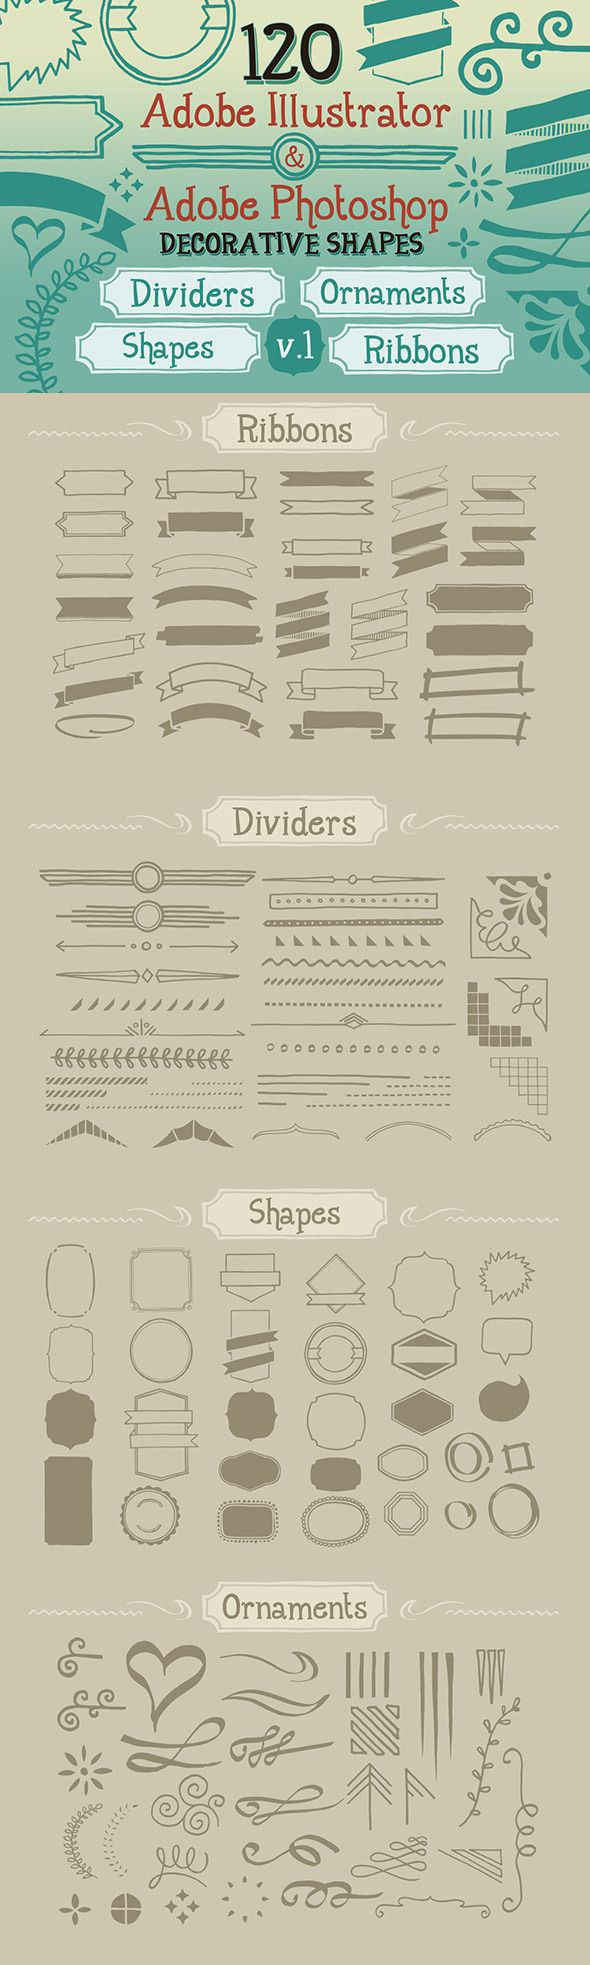 Graphic River: Graphics for print, web, add-ons, vectors, icons, fonts, logos, textures, objects....mock-ups, etc